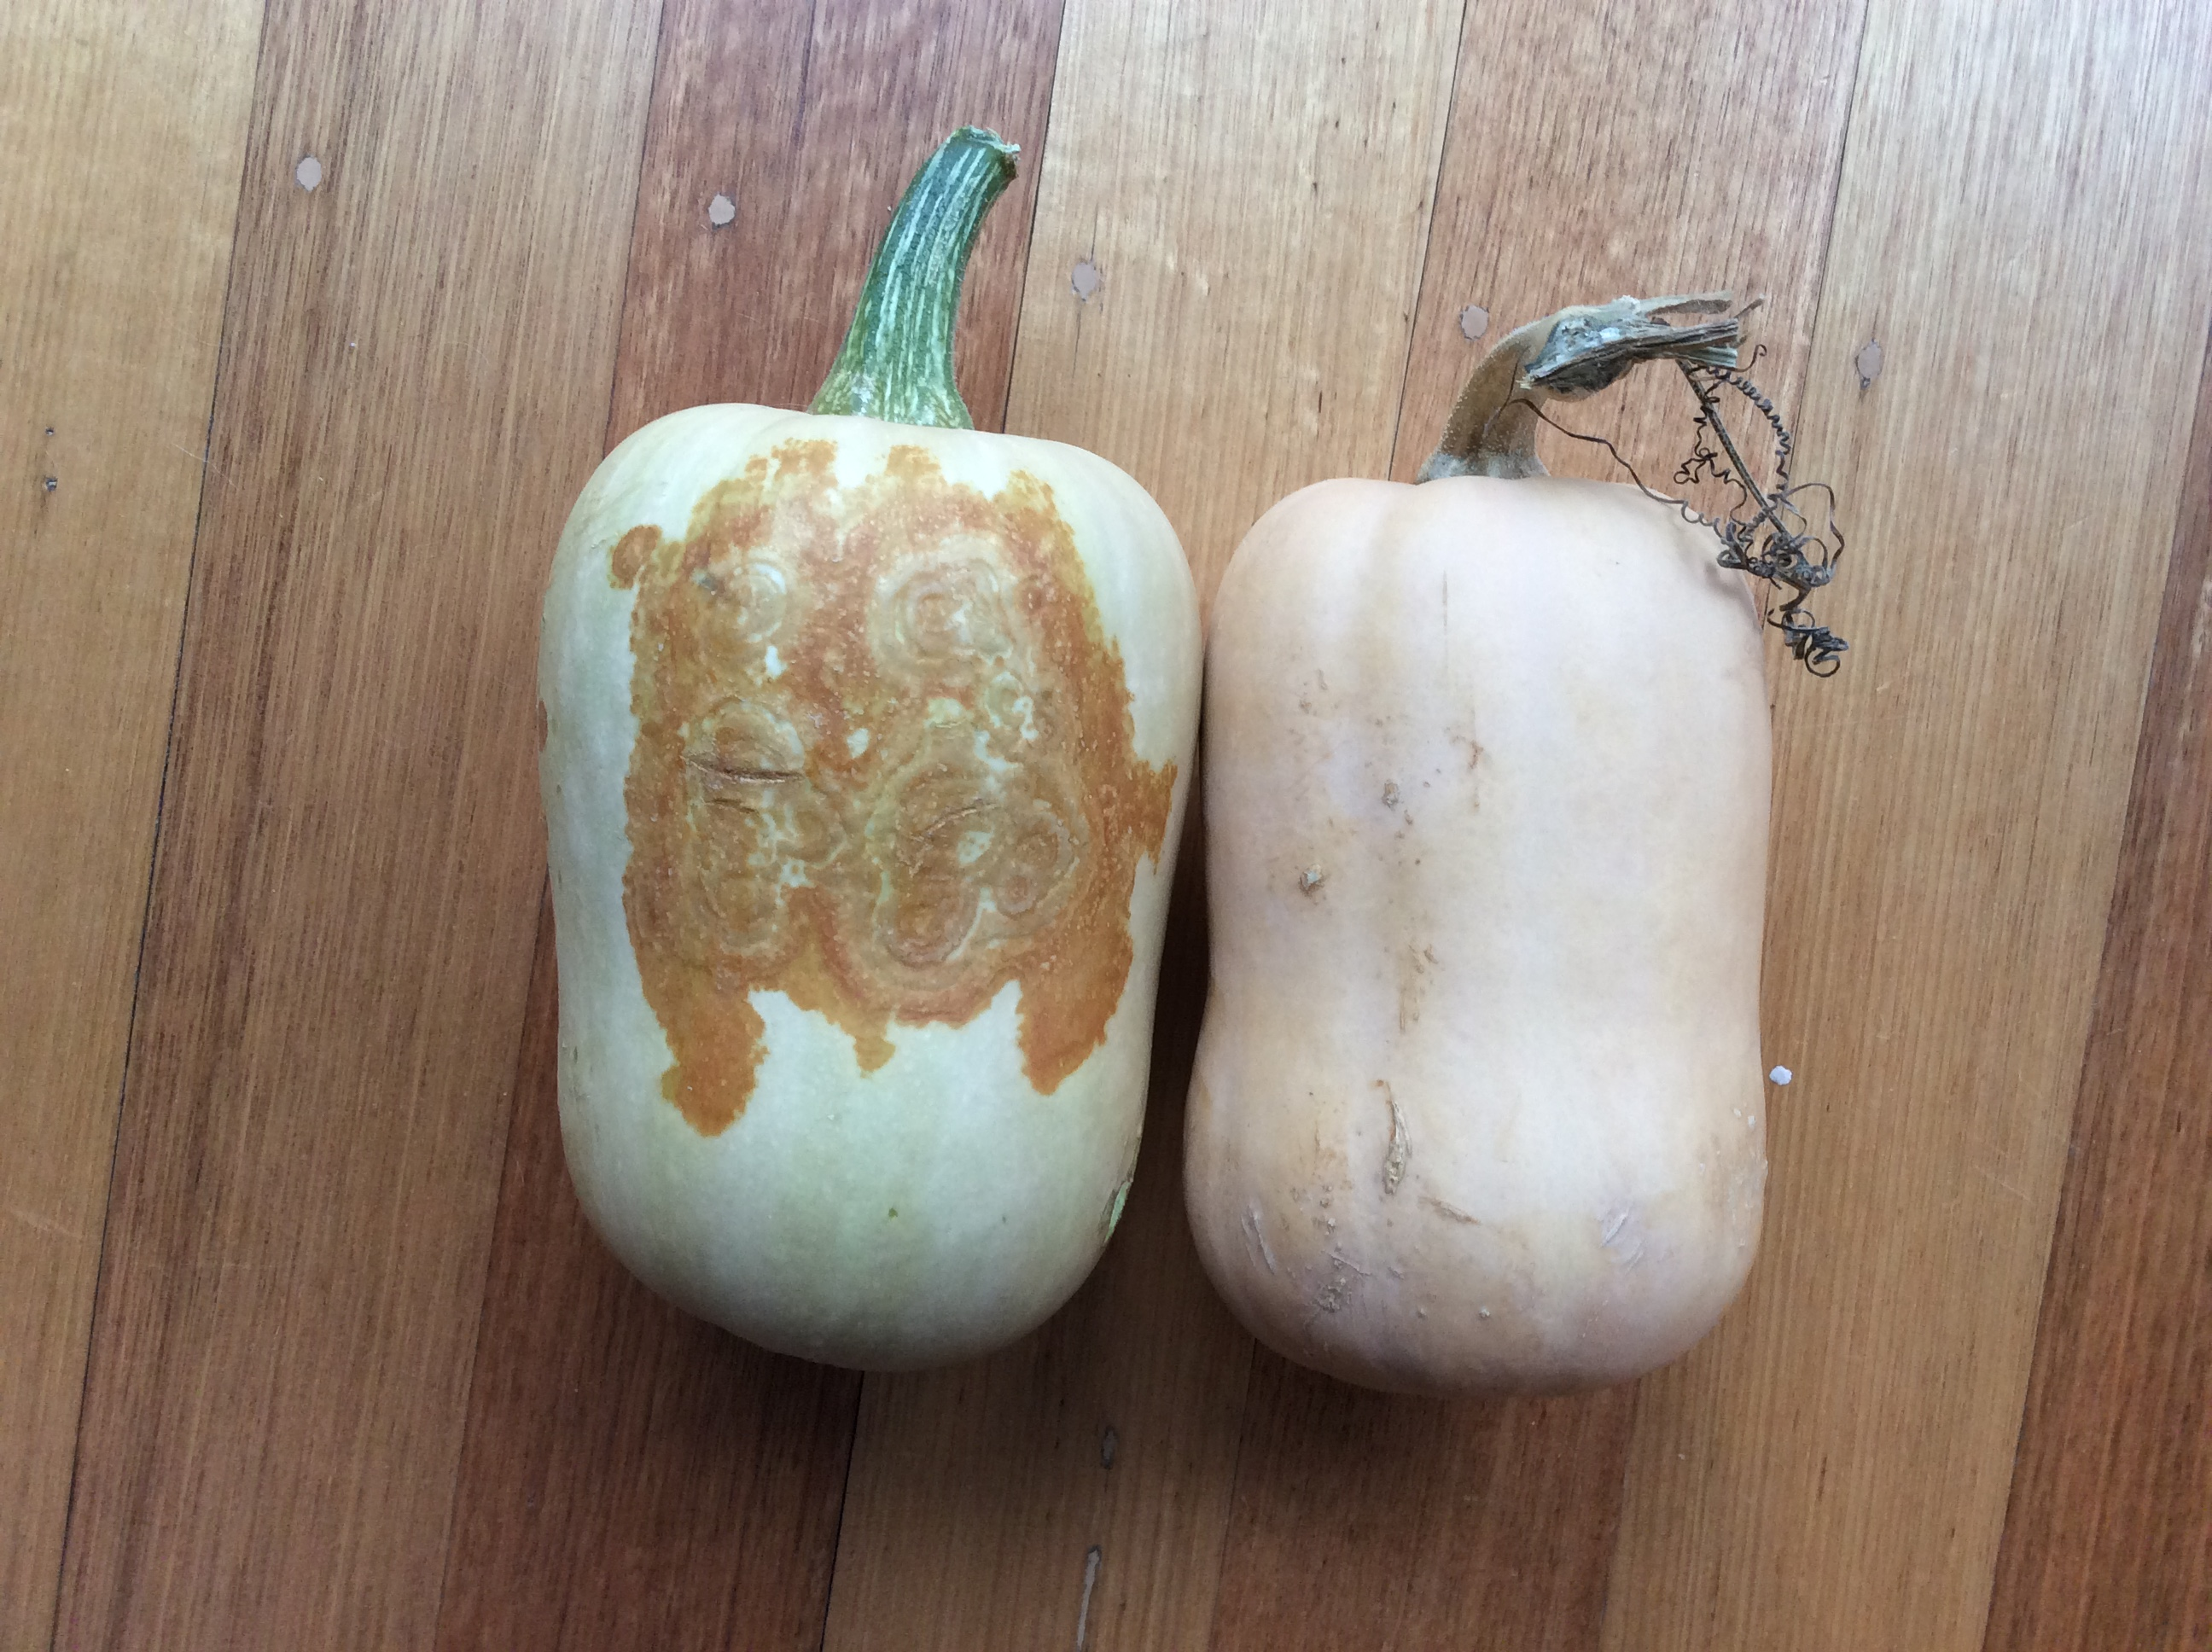 A mottled pumpkin next to a normal pumpkin